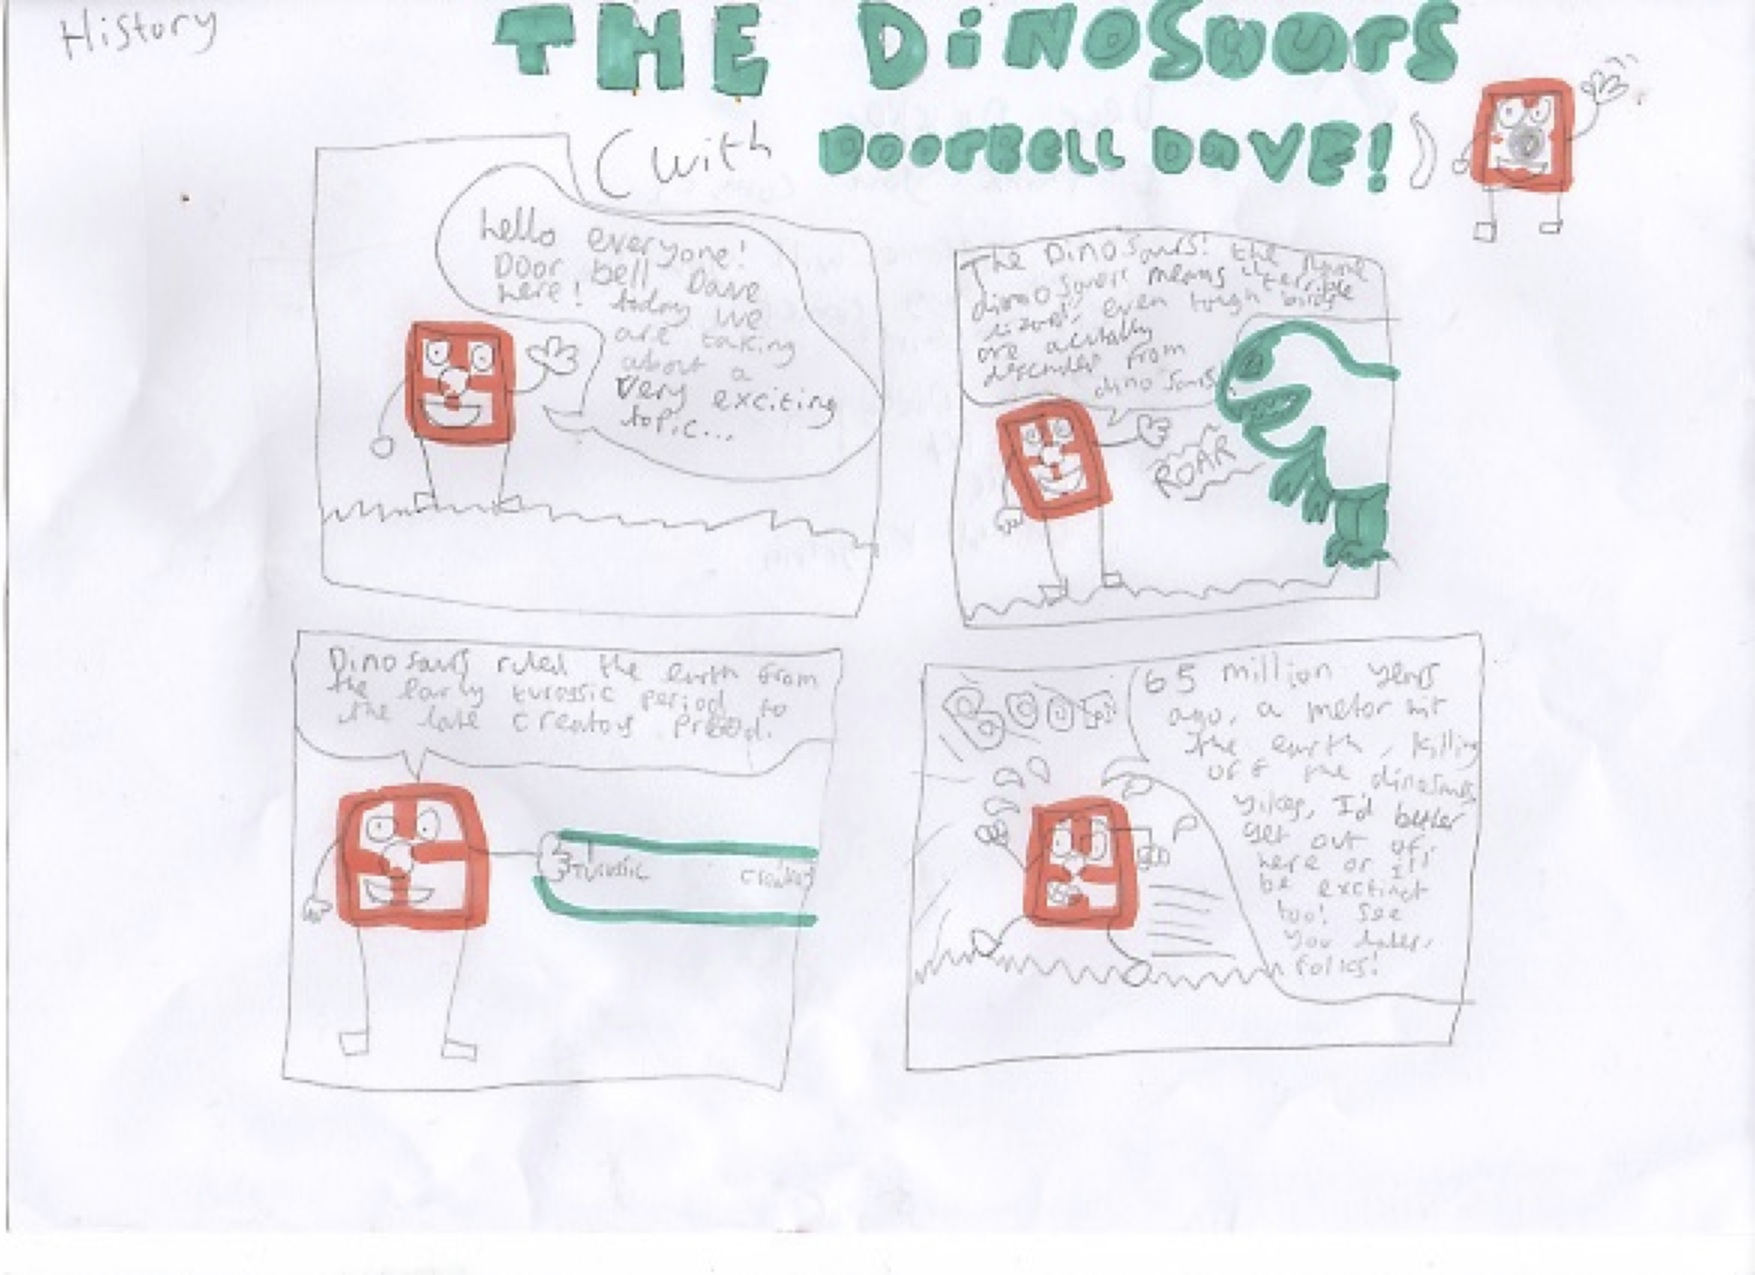 This is an educational comic about History that Zach (age 14) sent in to us. He even made his own character: Doorbell Dave!